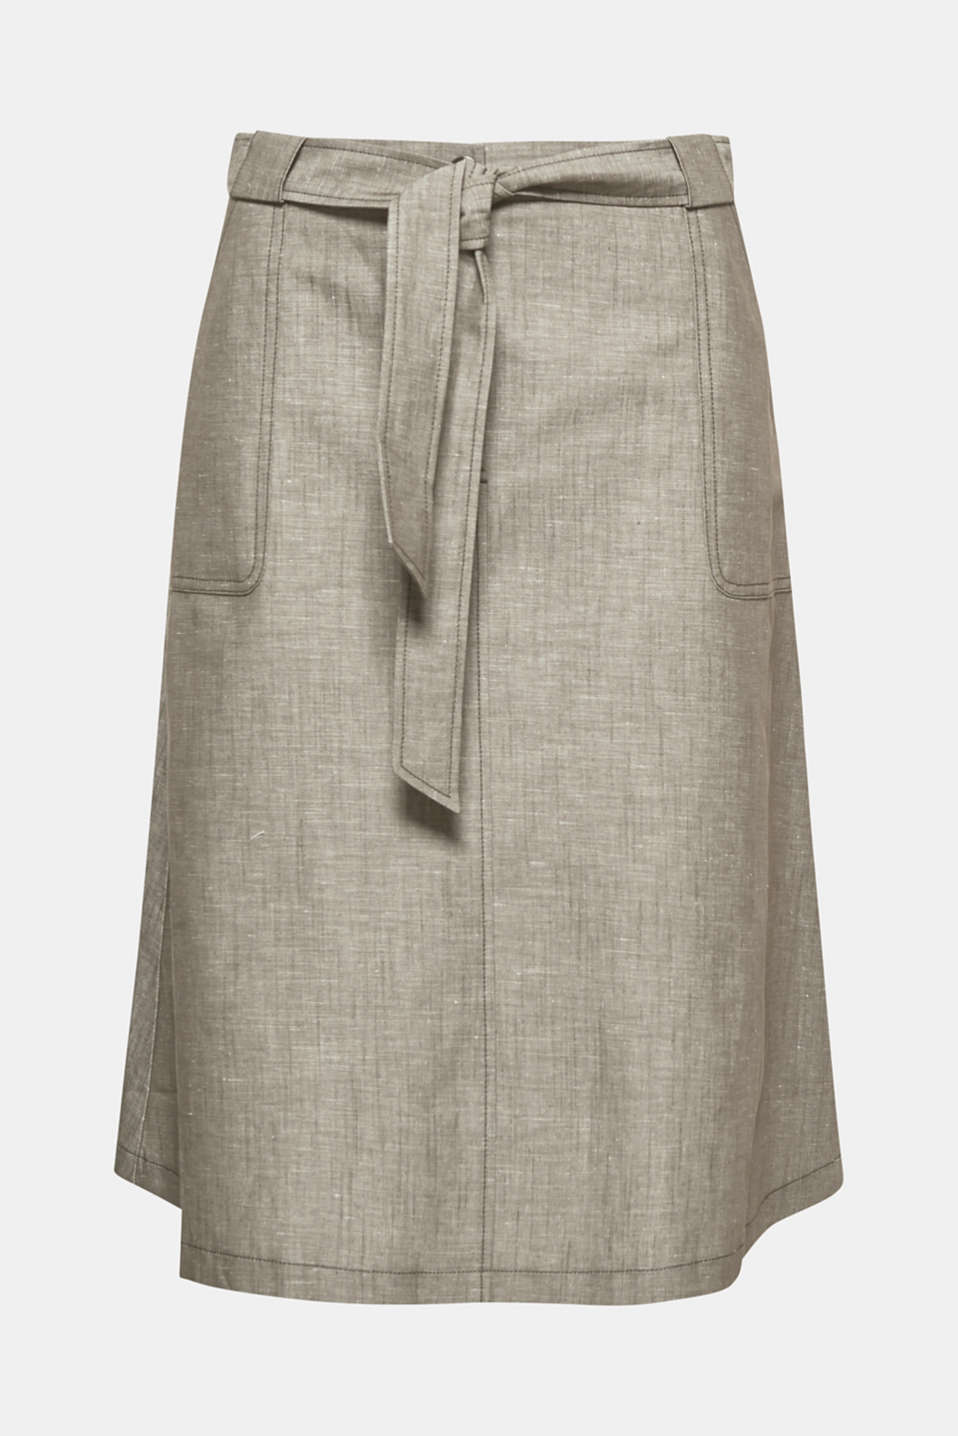 The trendy midi length, the flared silhouette and the lightweight linen blend make this skirt a summery must-have!